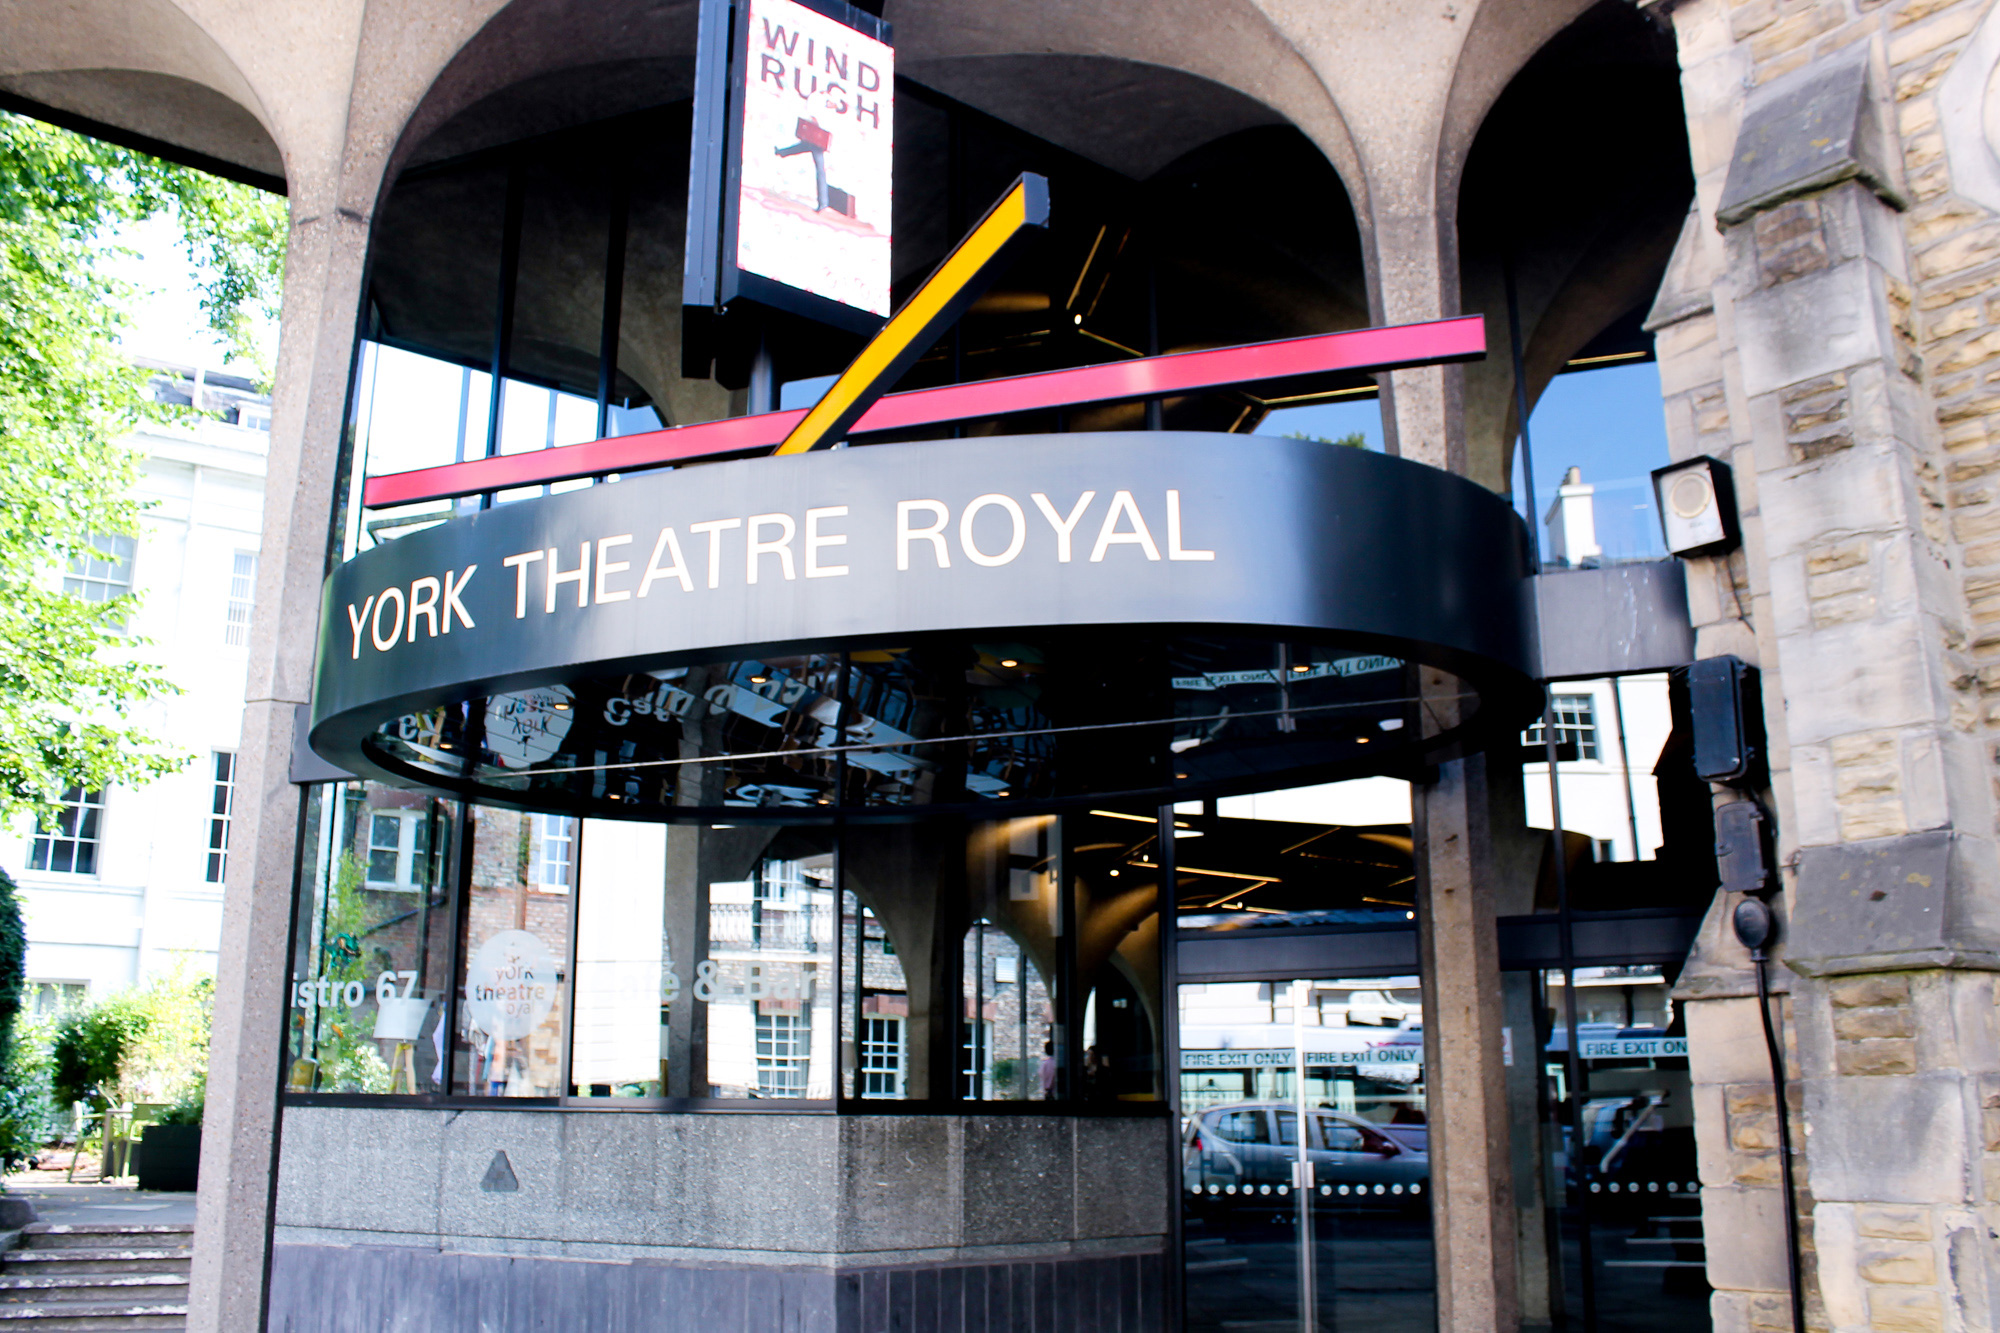 York Theatre Royal Mural Illustration Buttercrumble